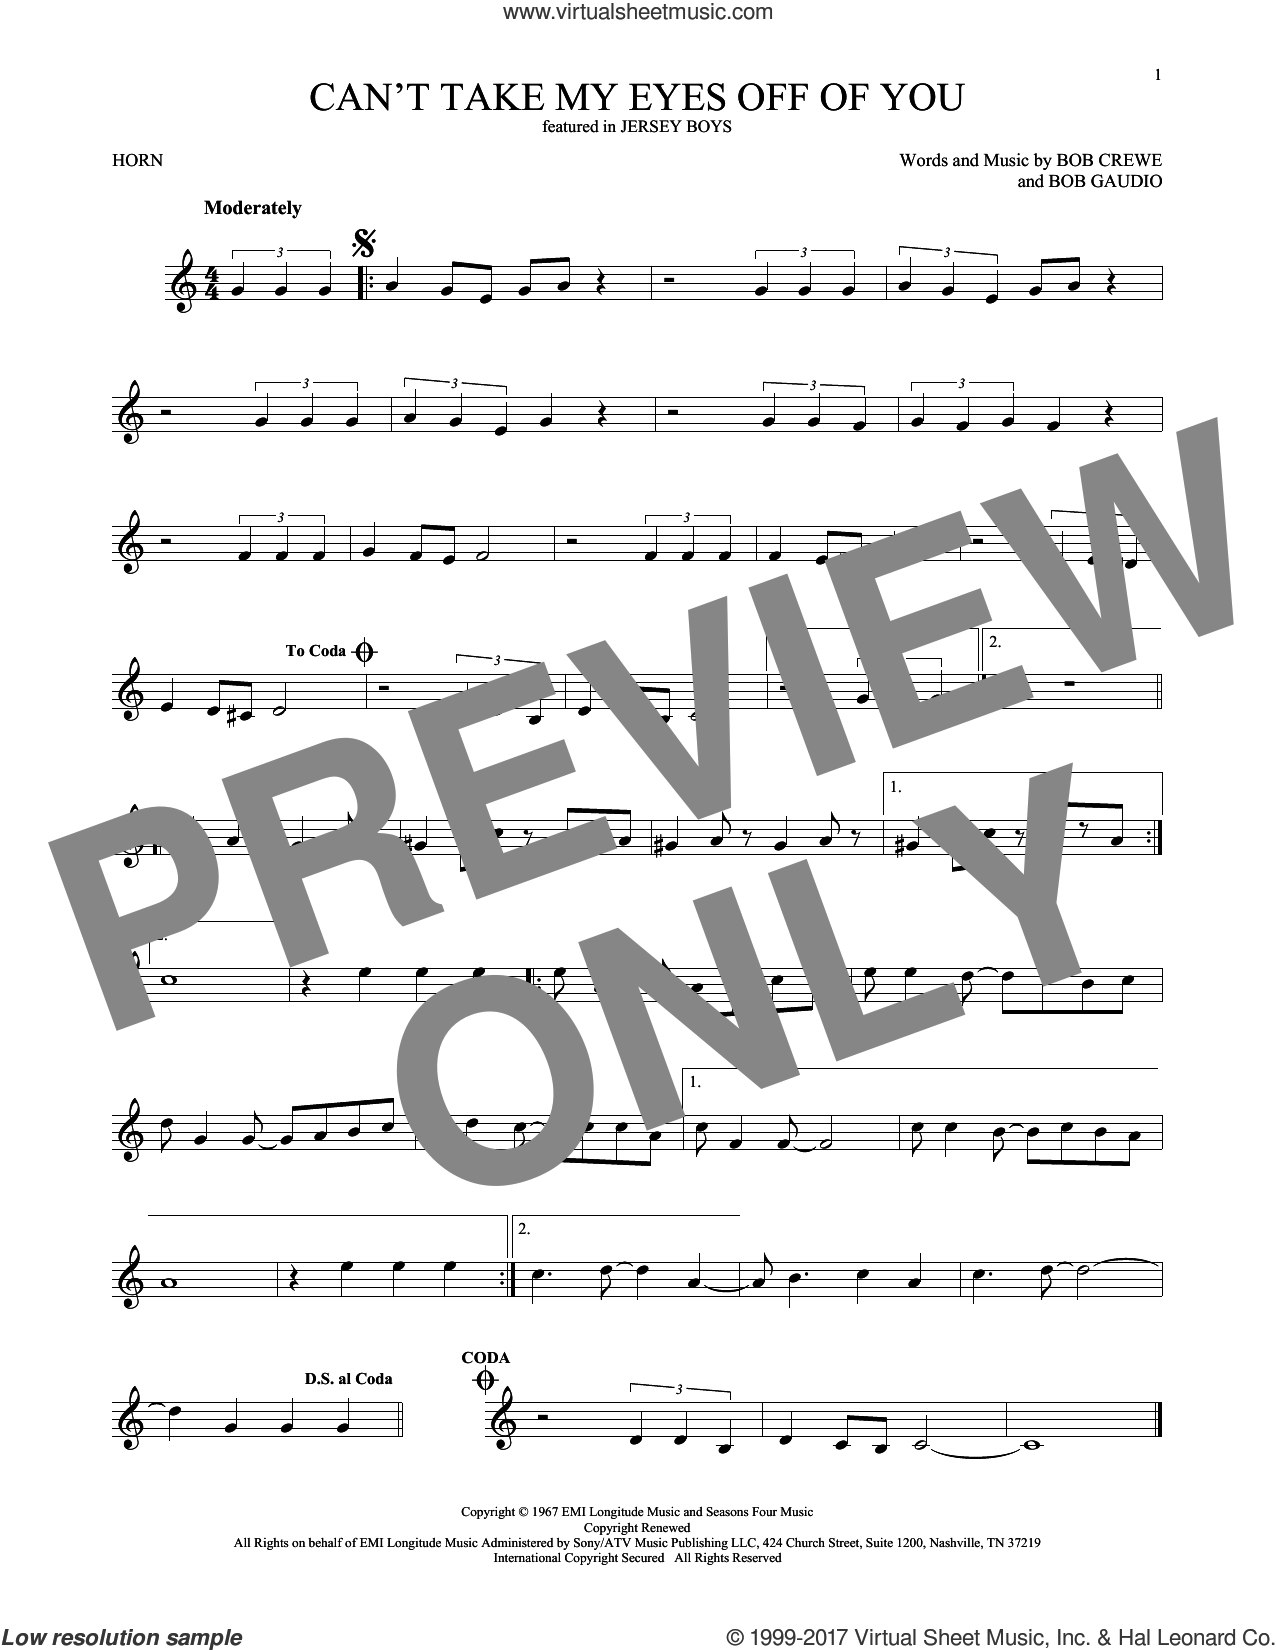 Can't Take My Eyes Off Of You sheet music for horn solo by The Four Seasons, Frankie Valli, Bob Crewe and Bob Gaudio, intermediate skill level